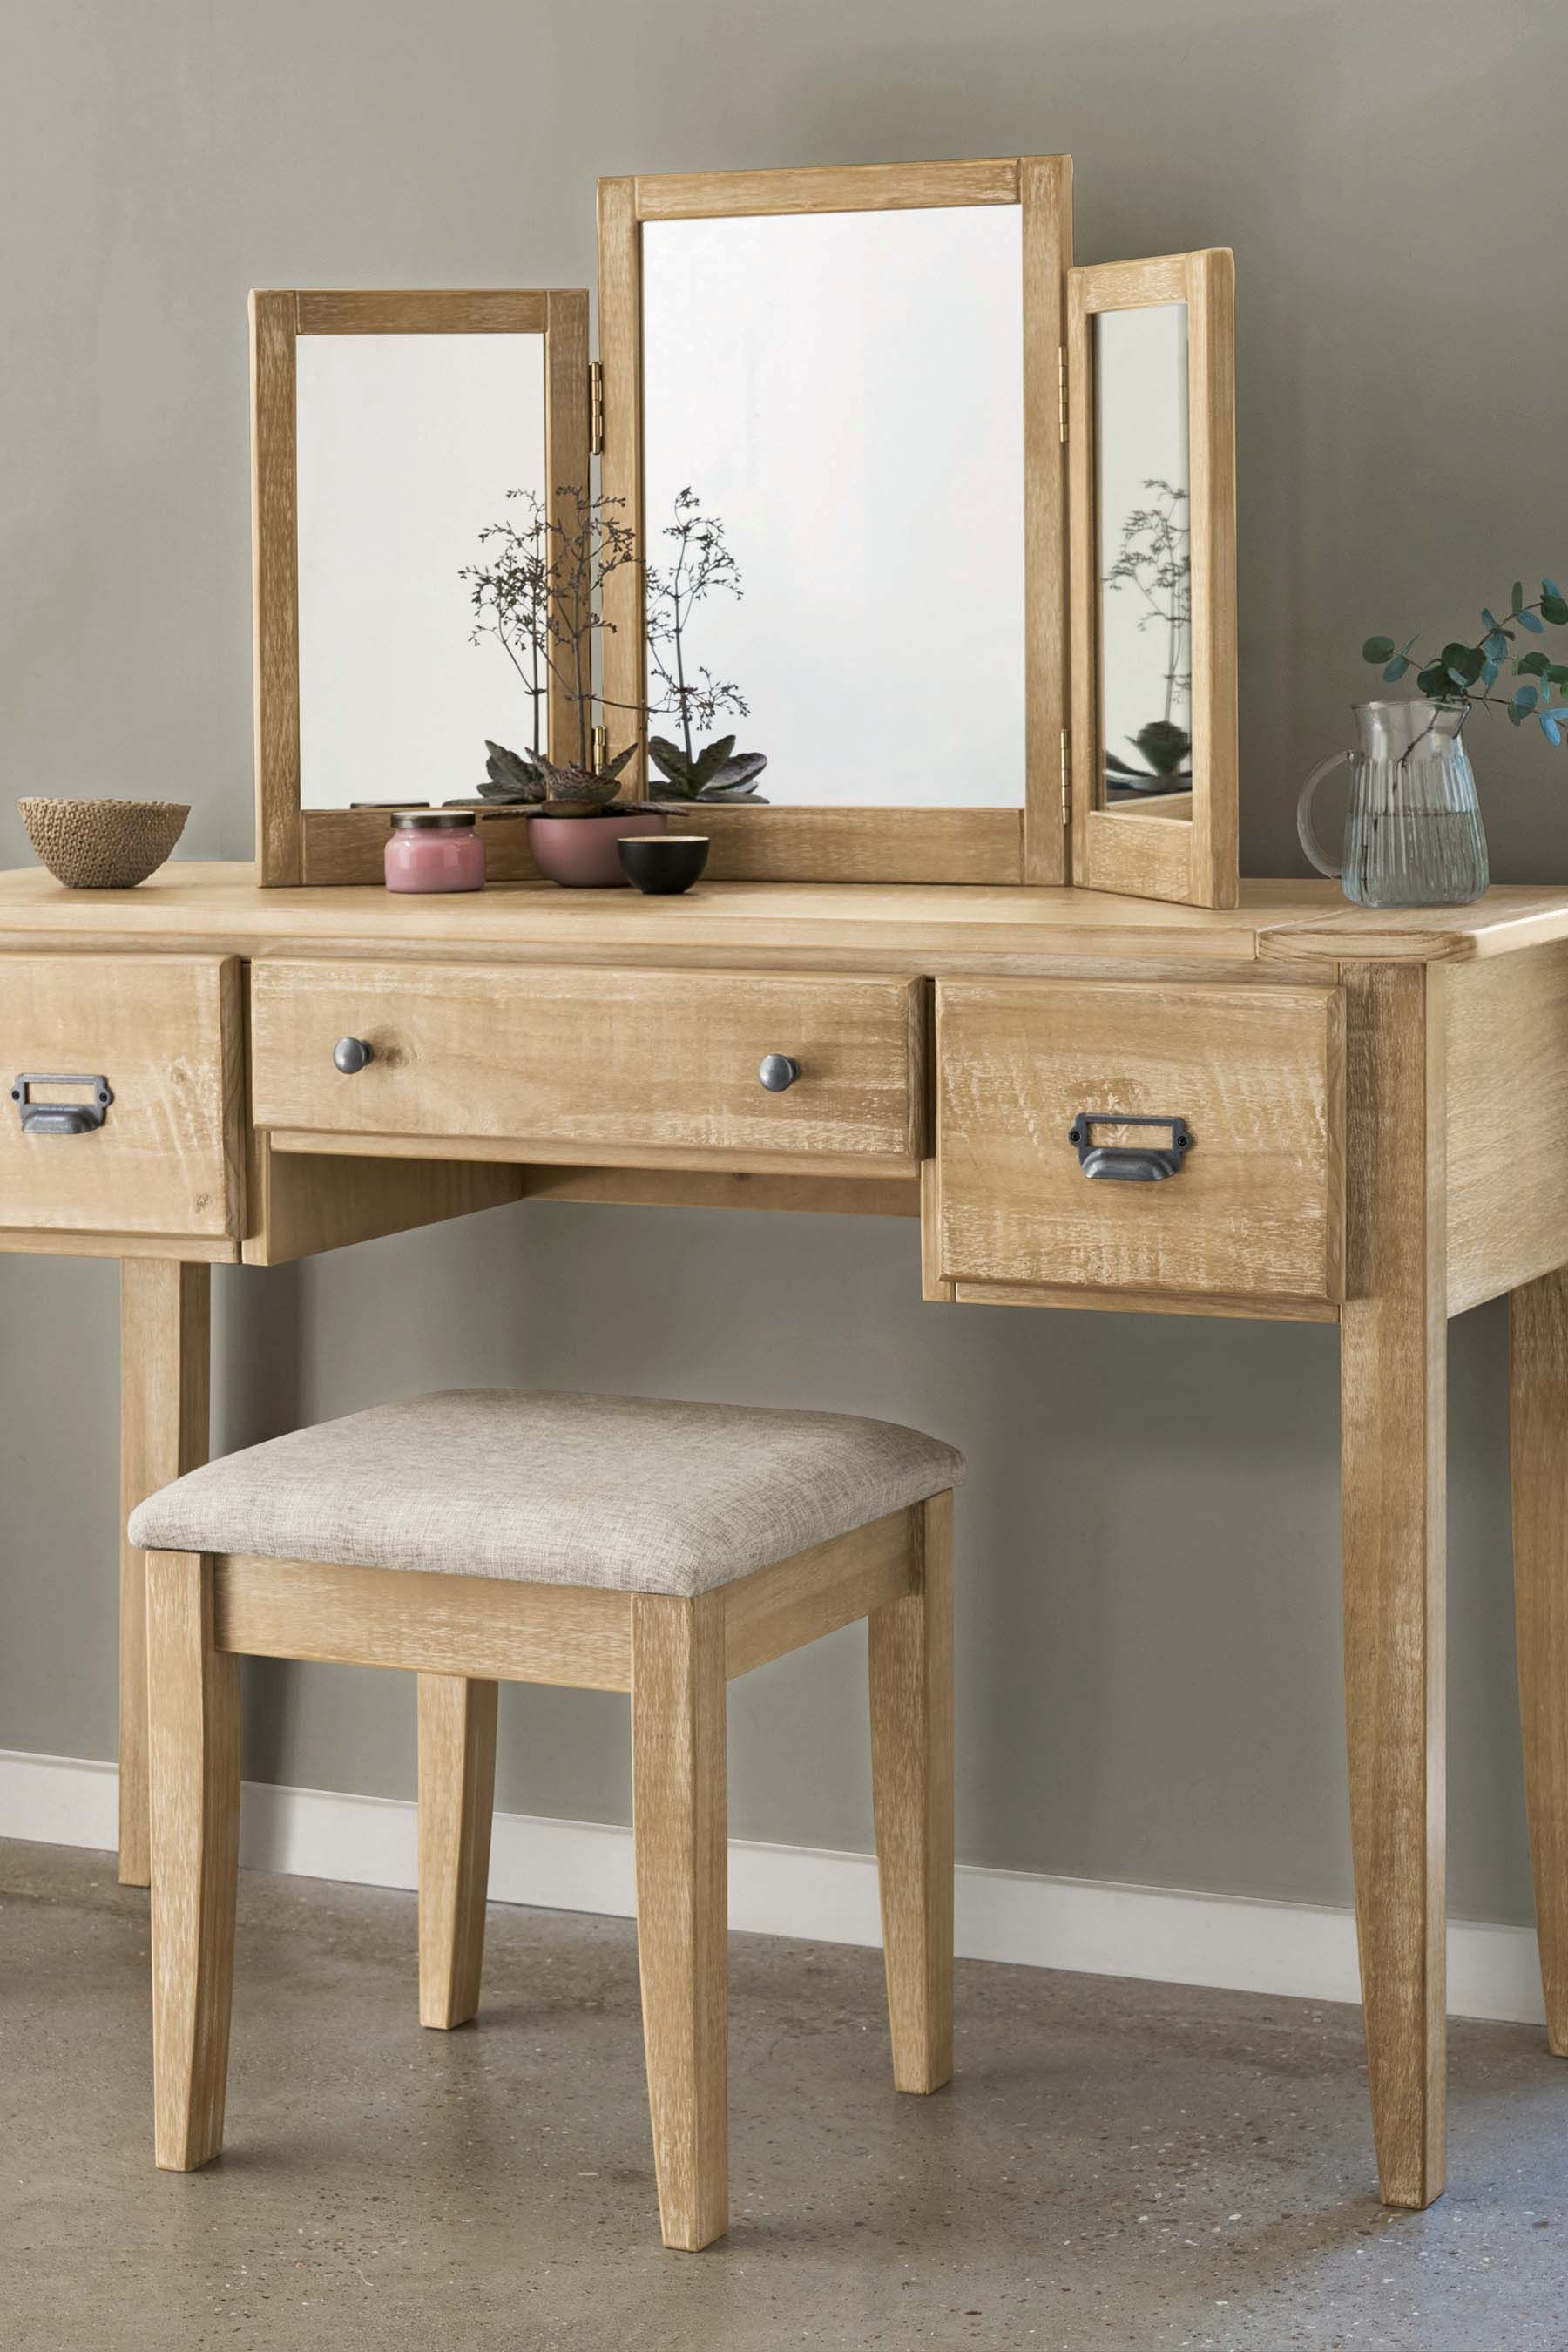 7ae872e2ac Next Huxley Dressing Table Set - Natural | Products | Dressing table ...